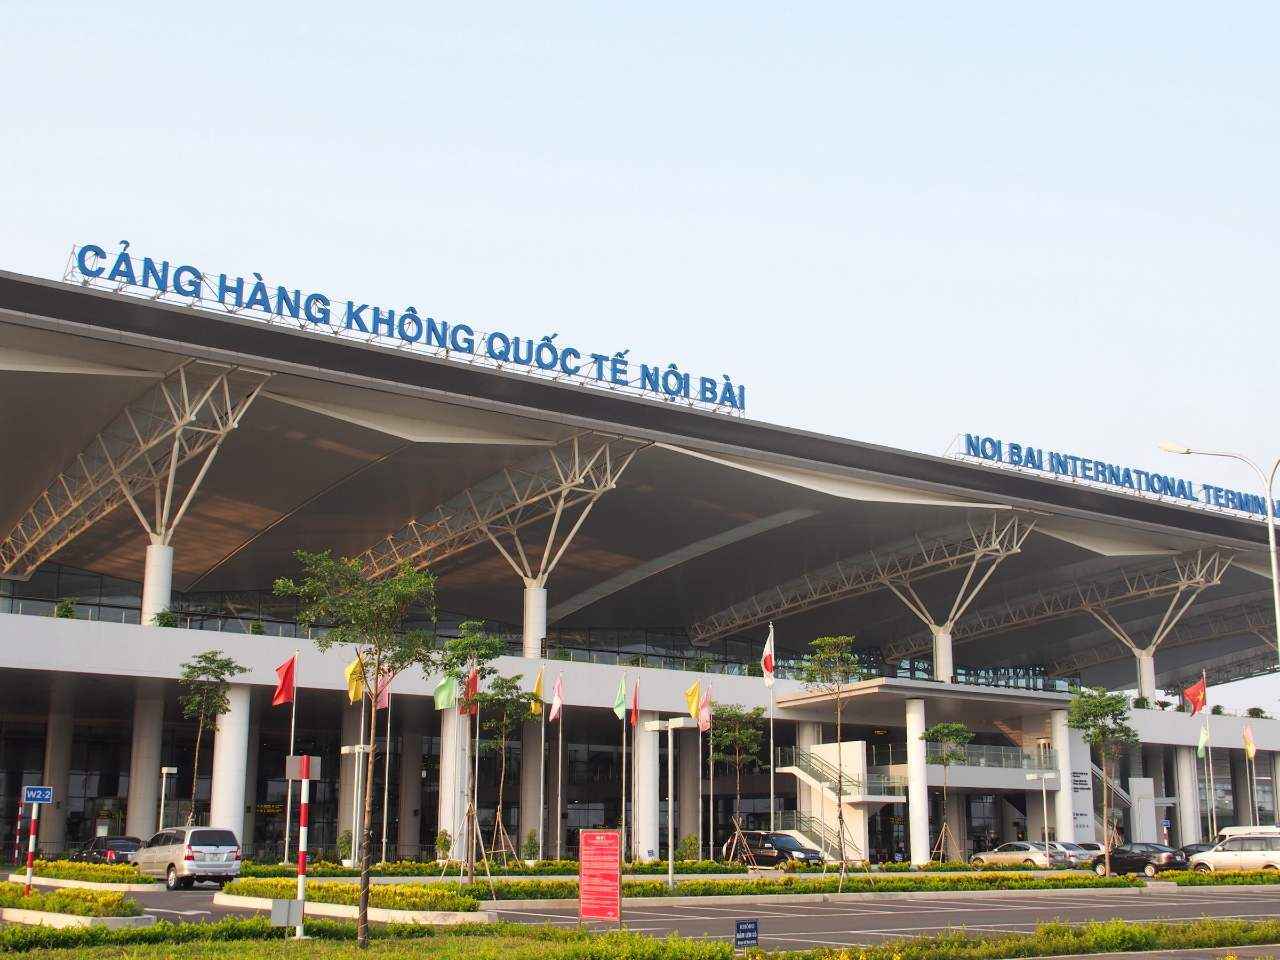 Hanoi Airport - How to get to hanoi from hanoi international airport